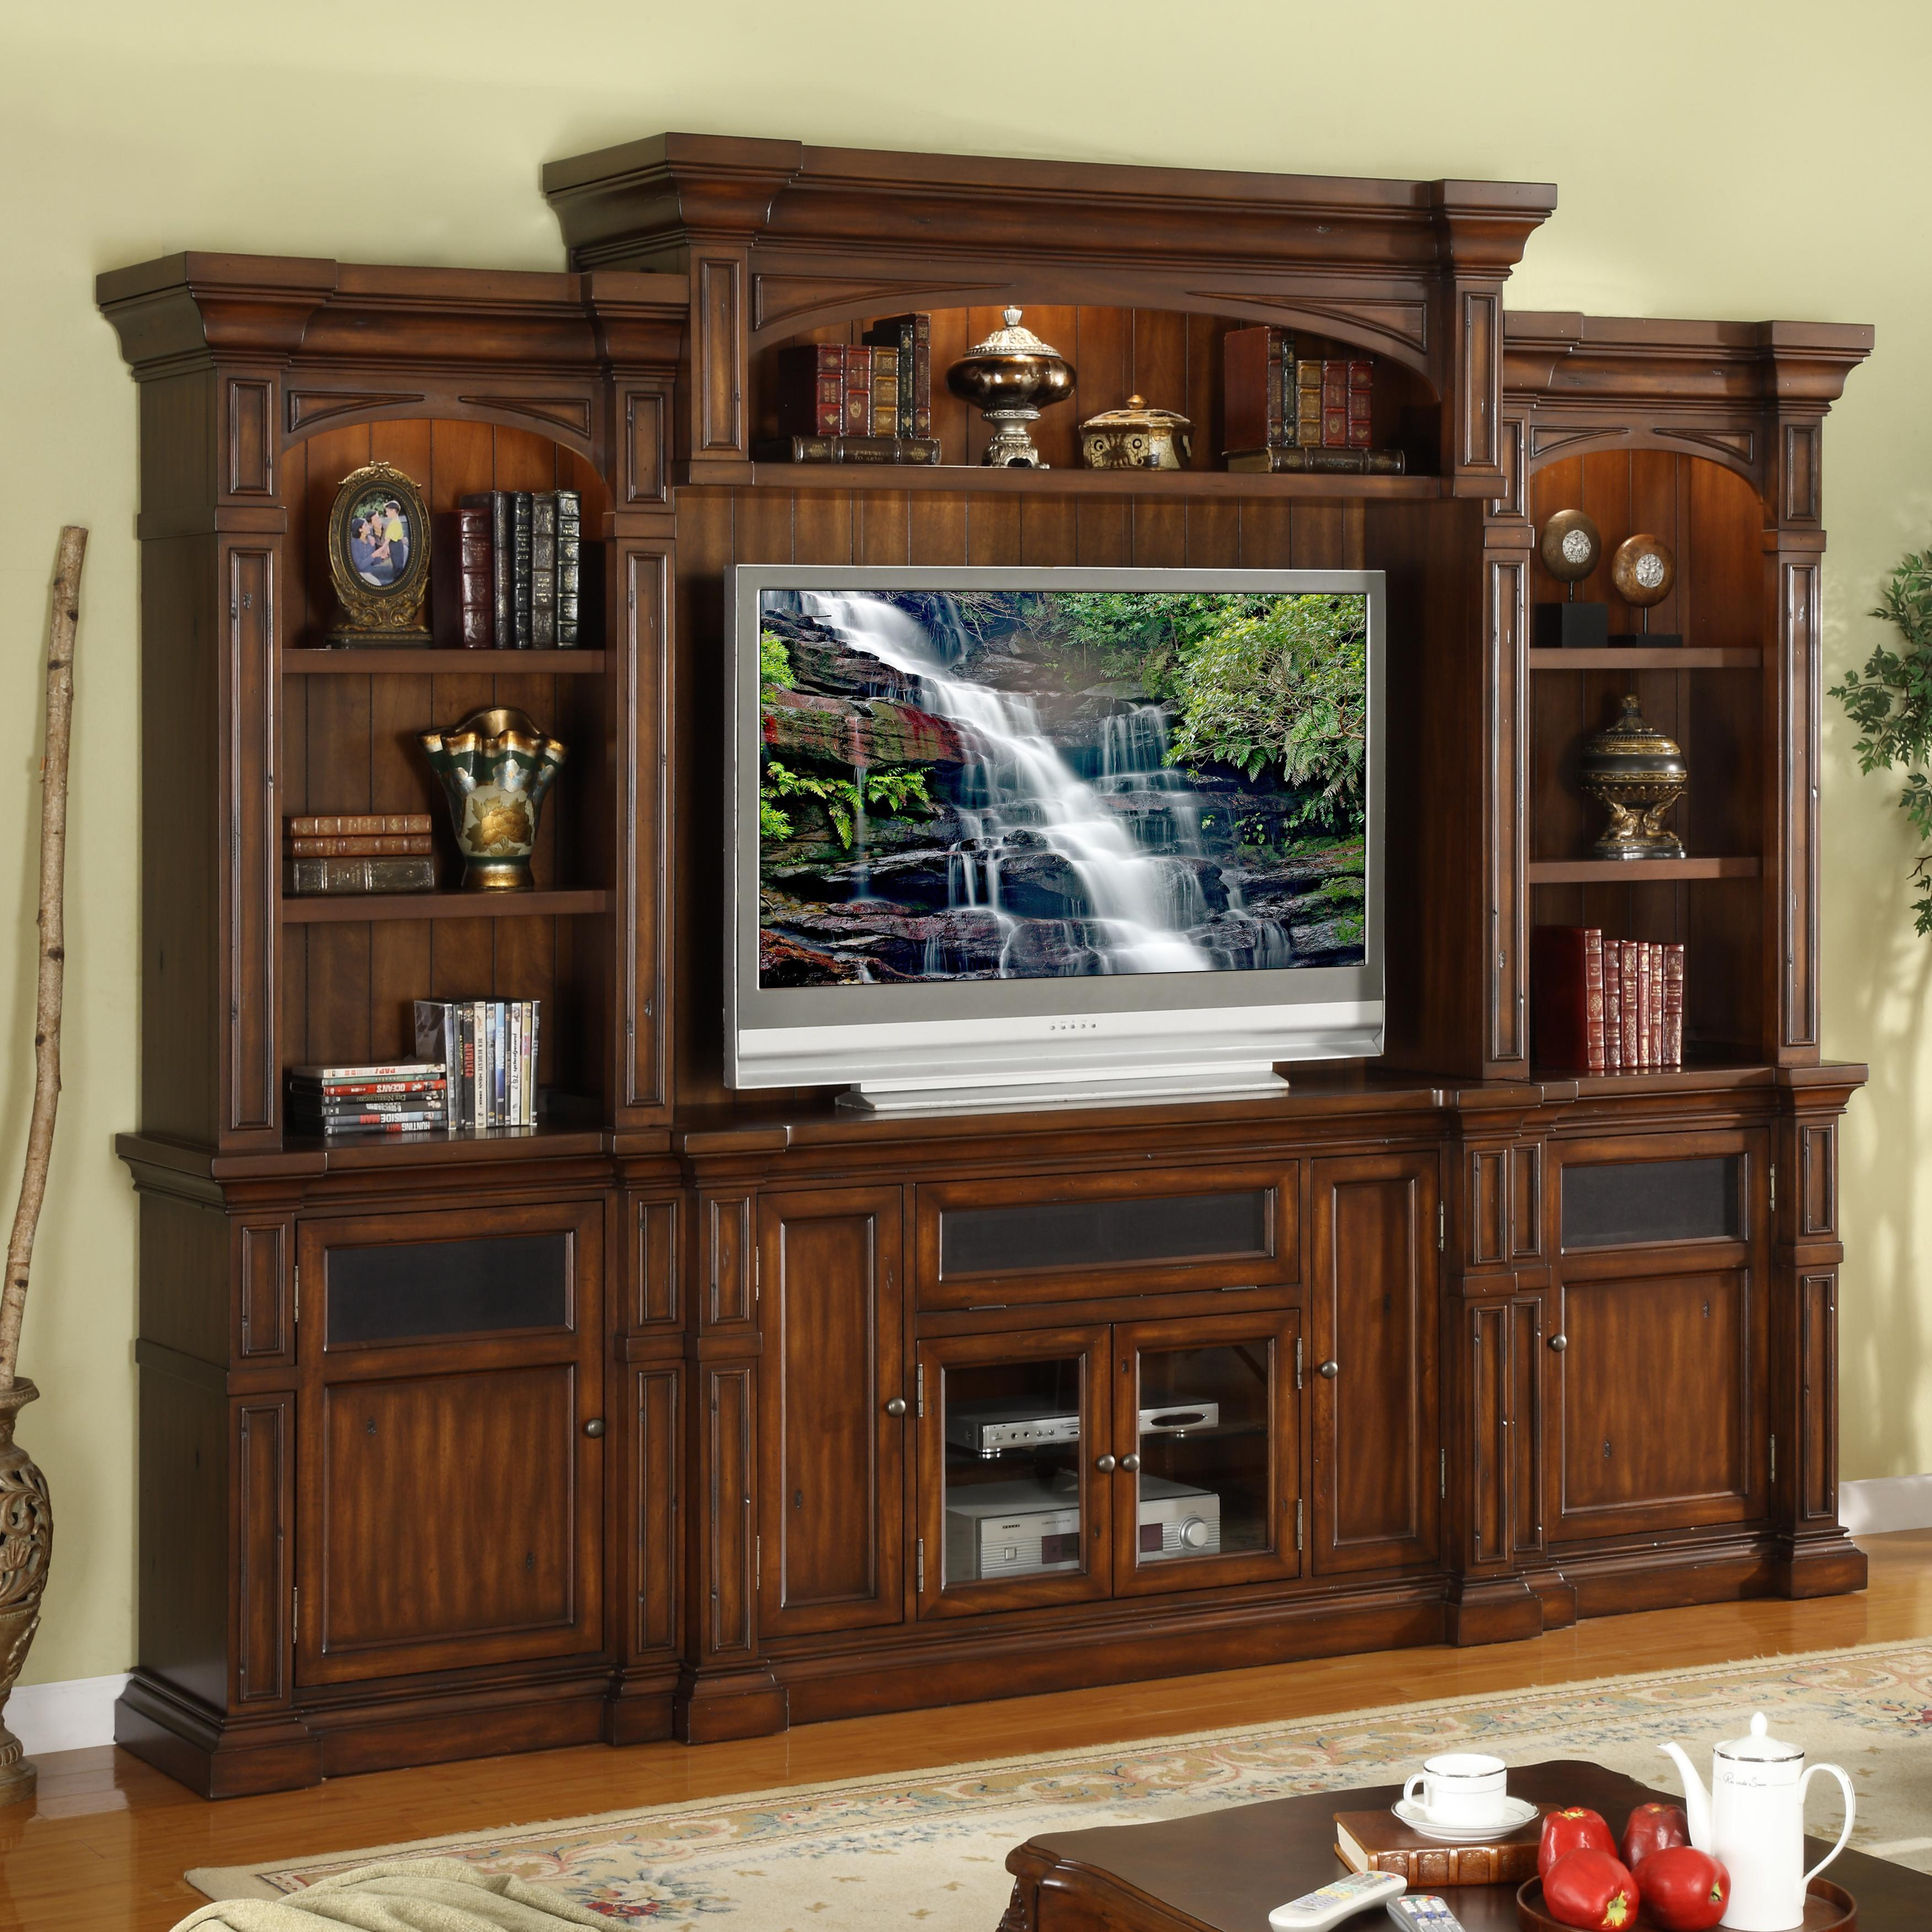 Legends Furniture Berkshire  Wall Unit Entertainment Center - Item Number: ZG-B1100+B3201+B3202+B3203